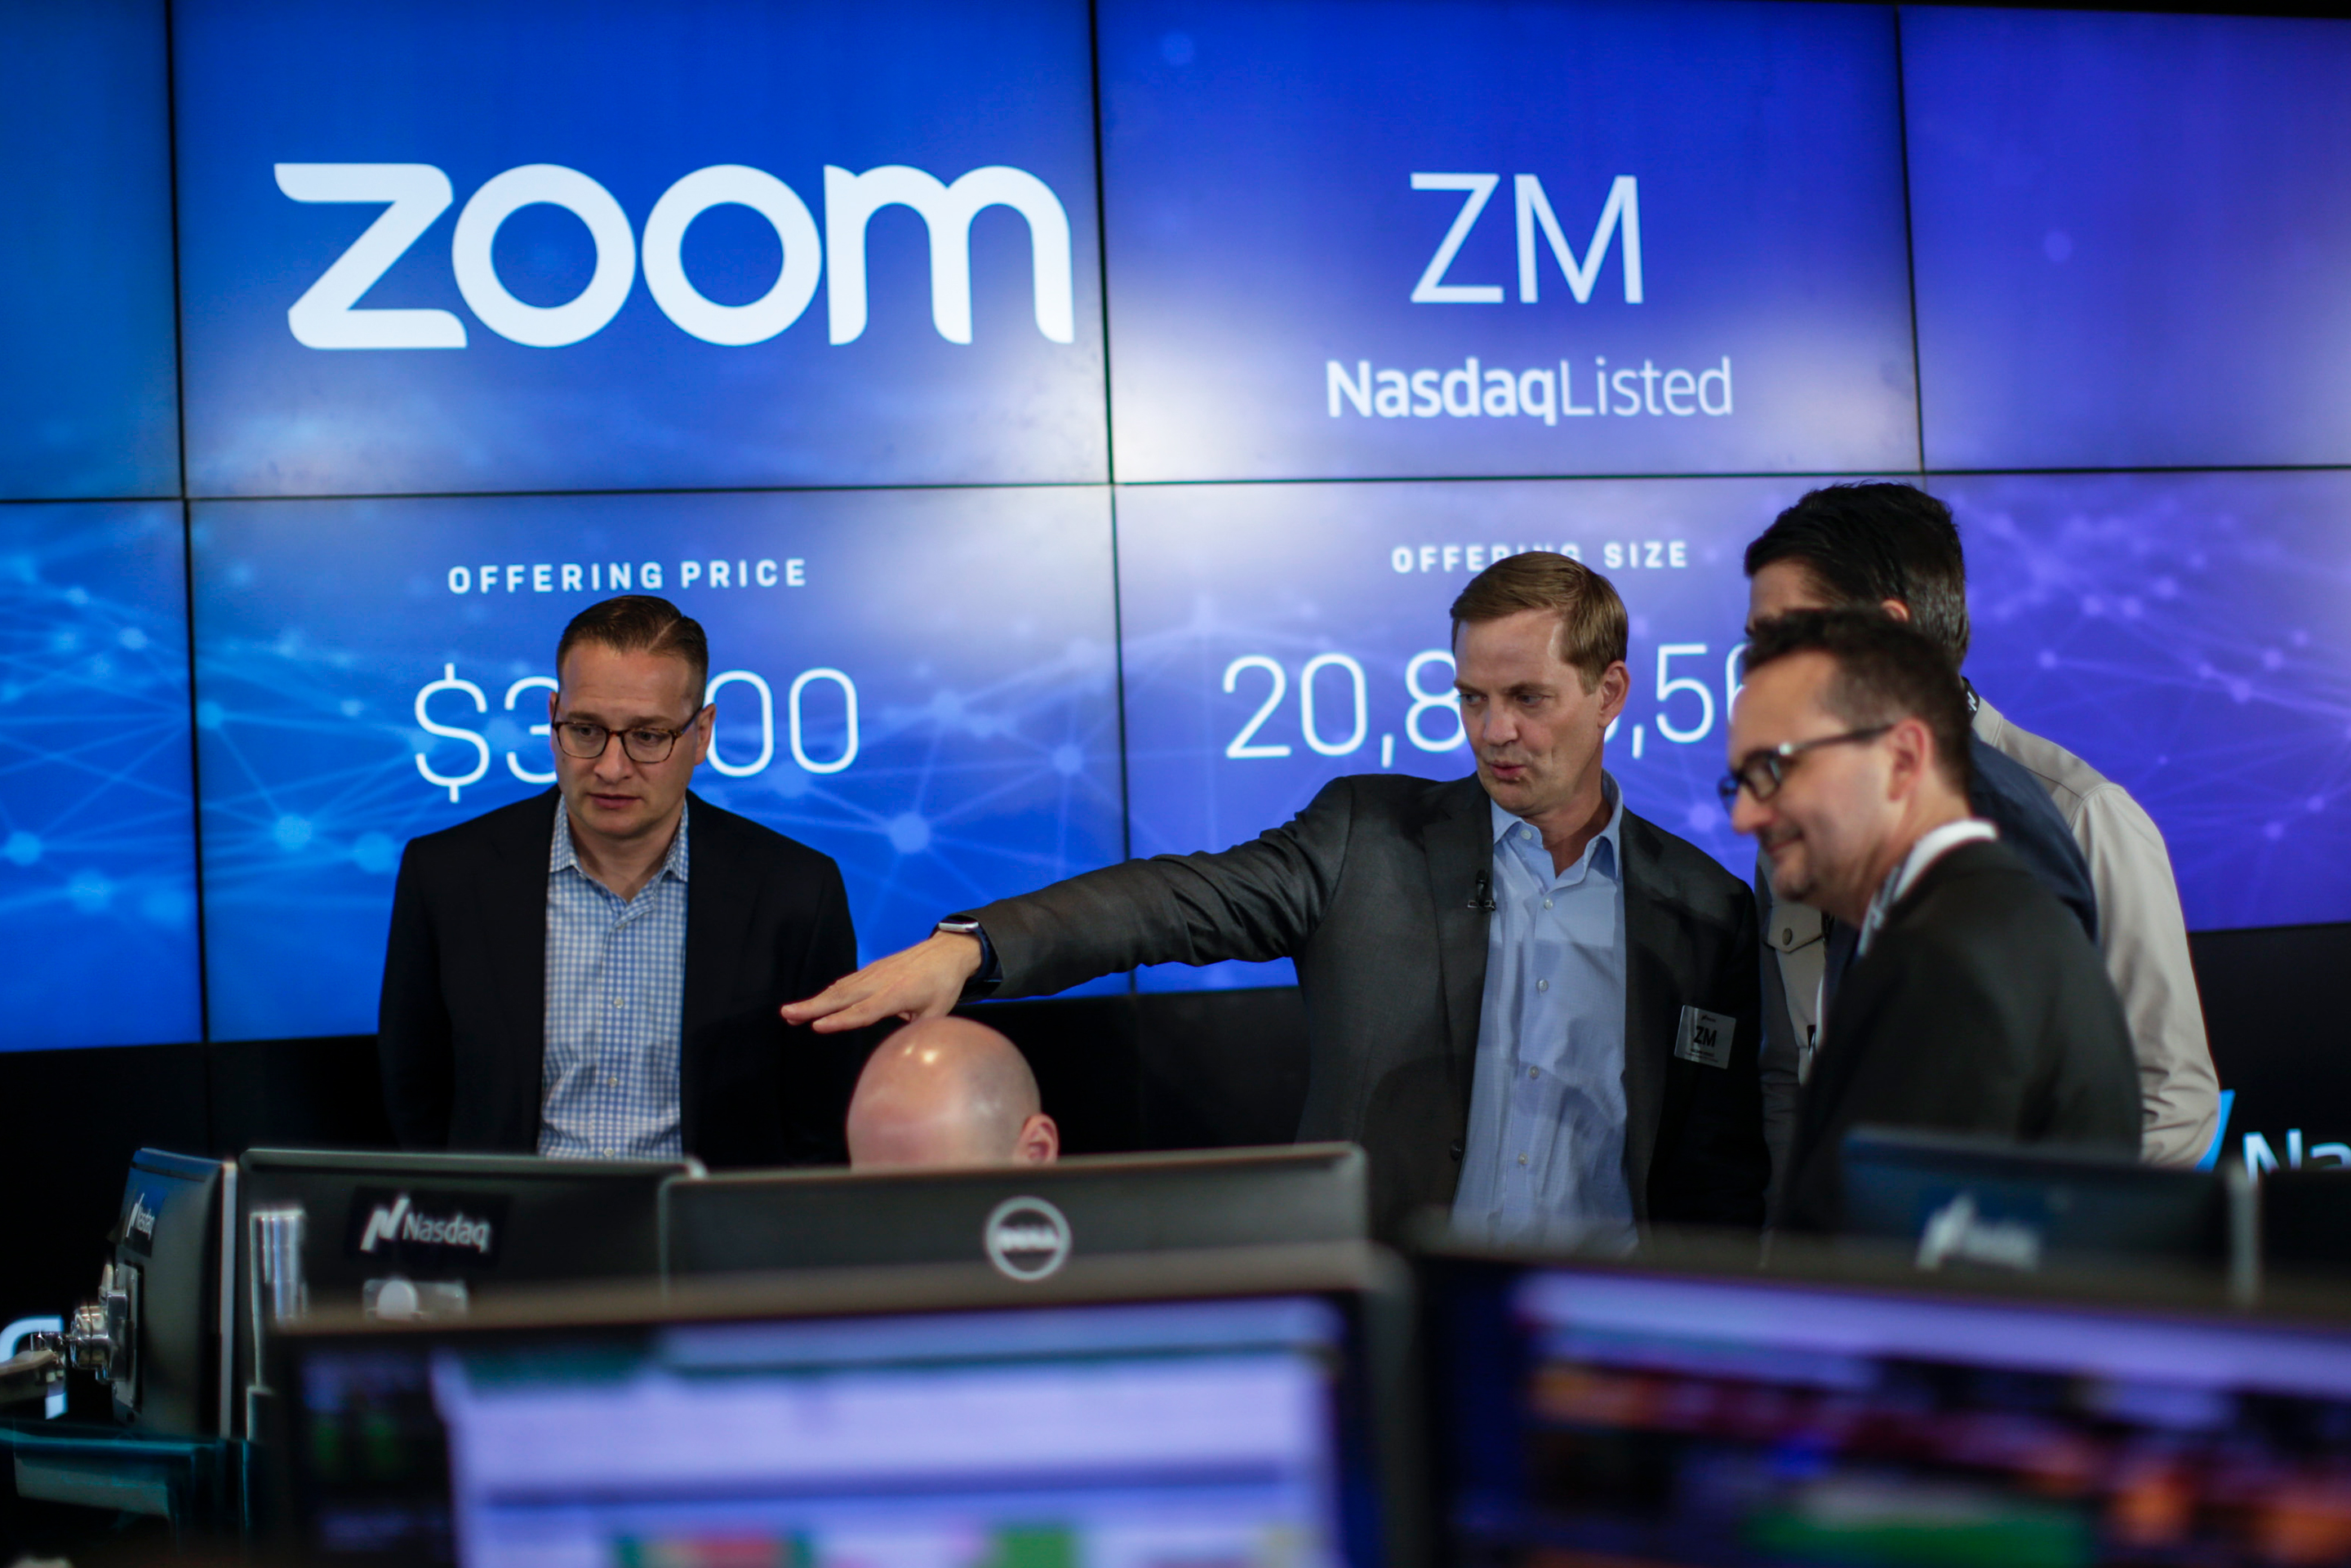 Zoom Stock Halted After Investors Confuse It With Zoom Video Conferencing Stock Fortune